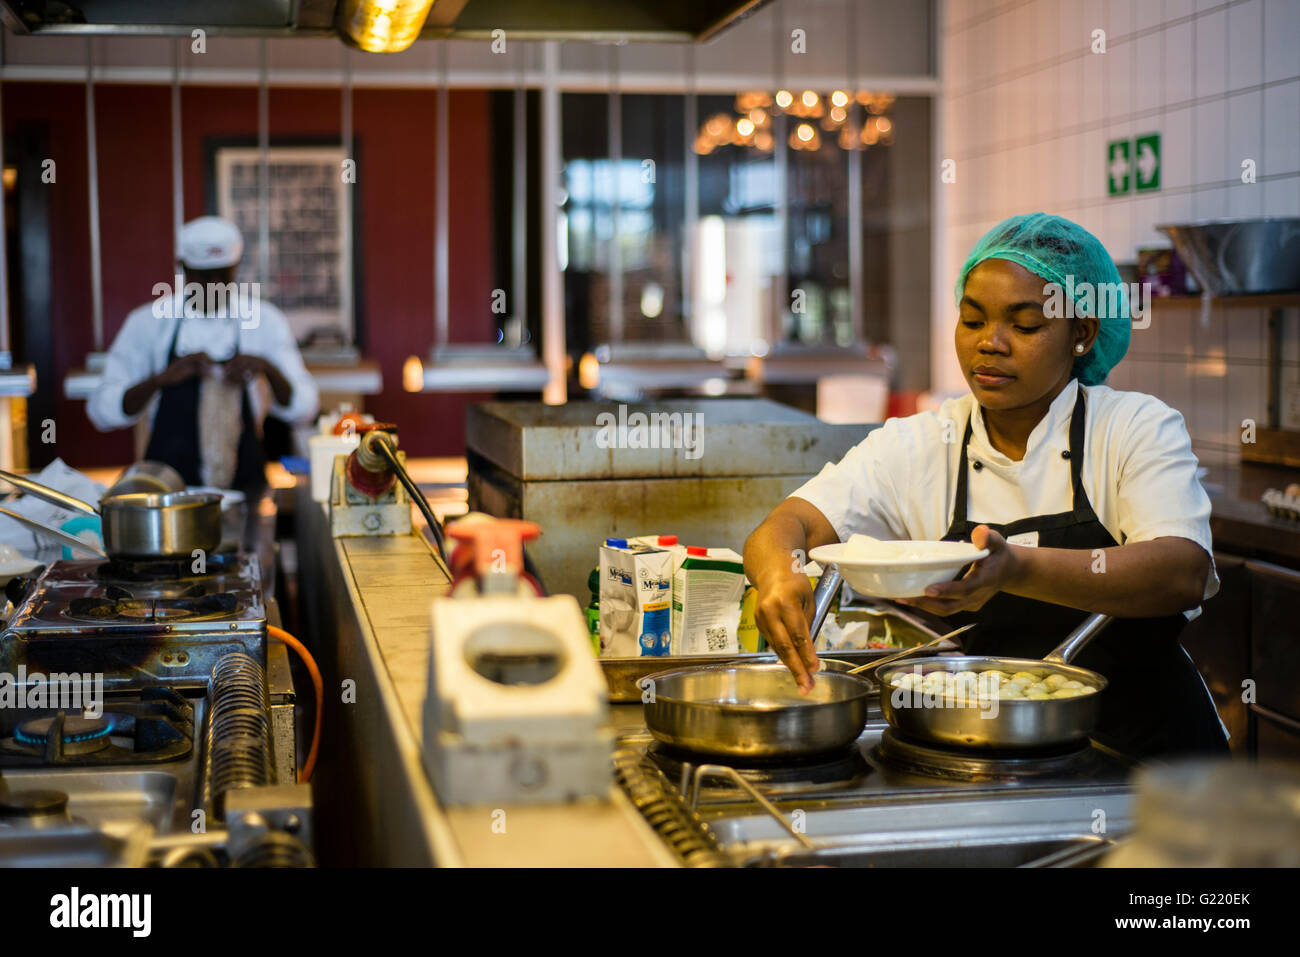 namibian woman cooking stock photos namibian woman cooking stock images alamy. Black Bedroom Furniture Sets. Home Design Ideas